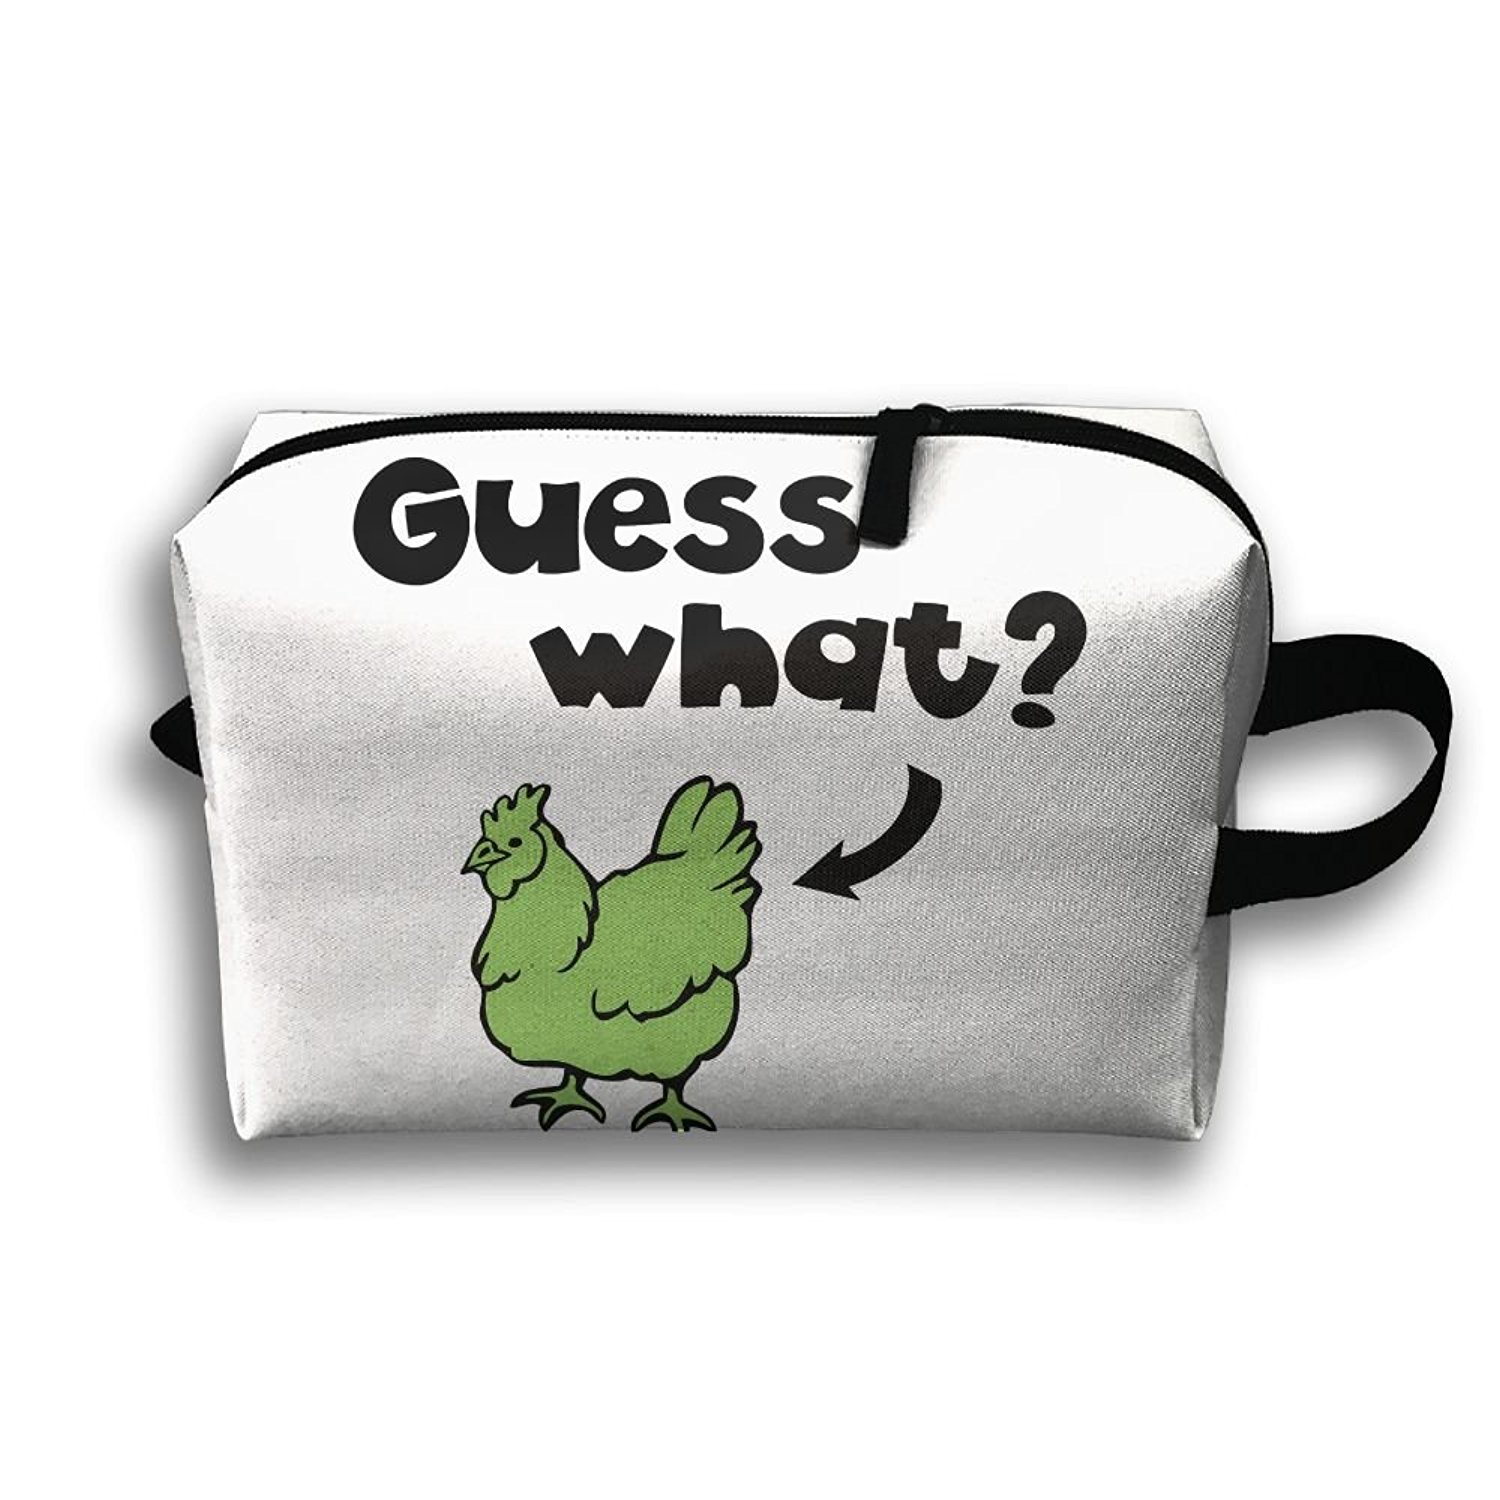 97cfcdd60b1b Get Quotations · Travel Bags Guess What-Chicken Butt Portable Storage Bag  Clutch Wallets Cosmetic Bags Organizer Zipper